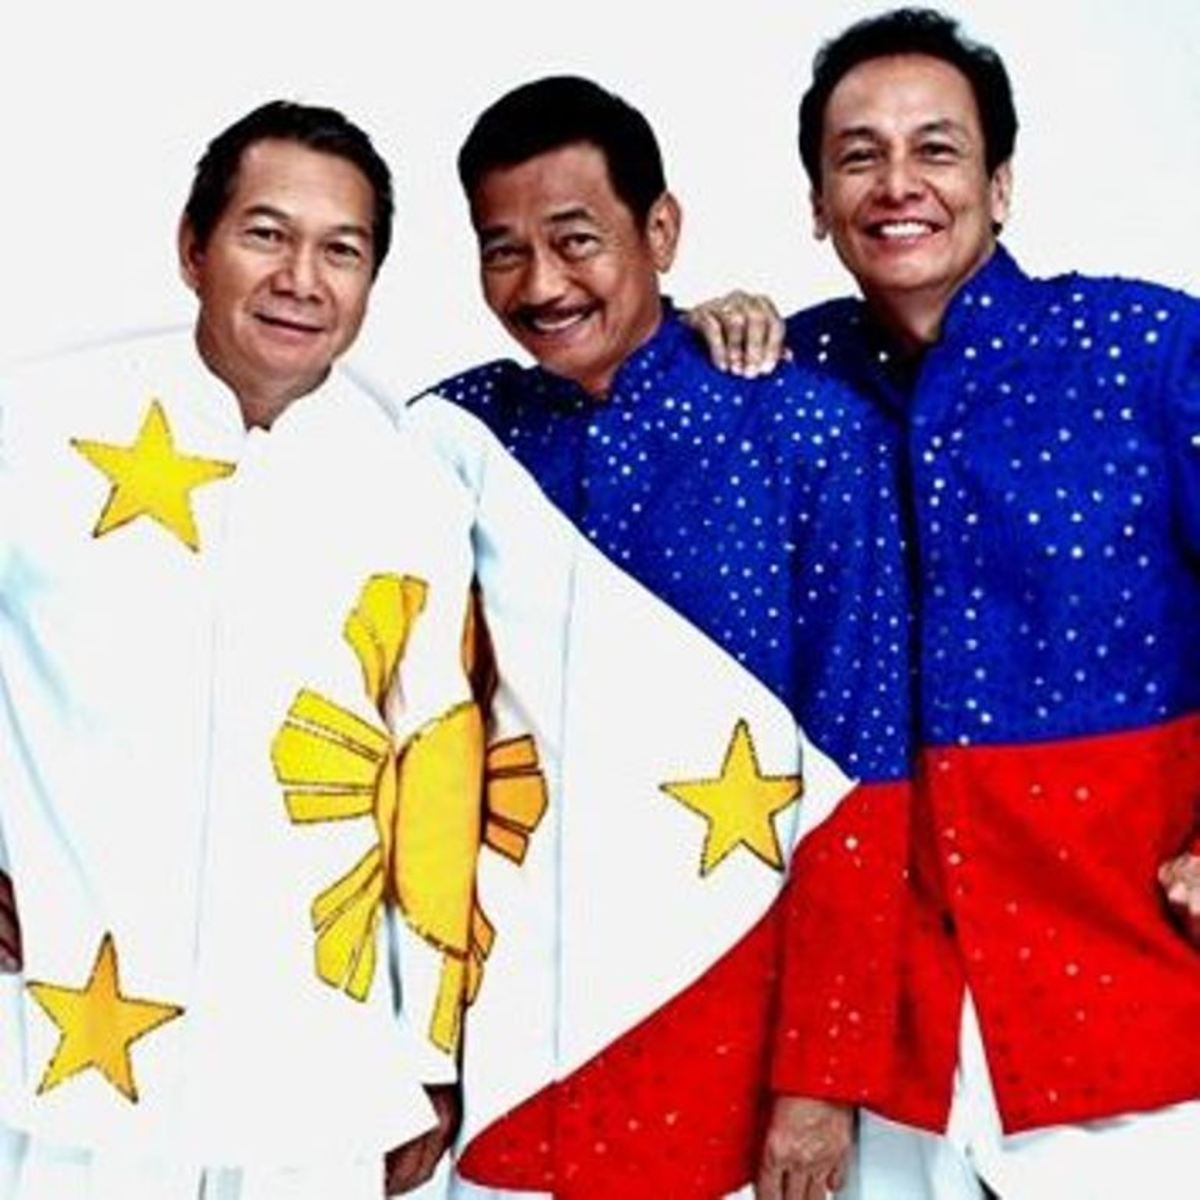 The APO Hiking Society (left to right) : Boboy Garovillo, Danny Javier and Jim Paredes